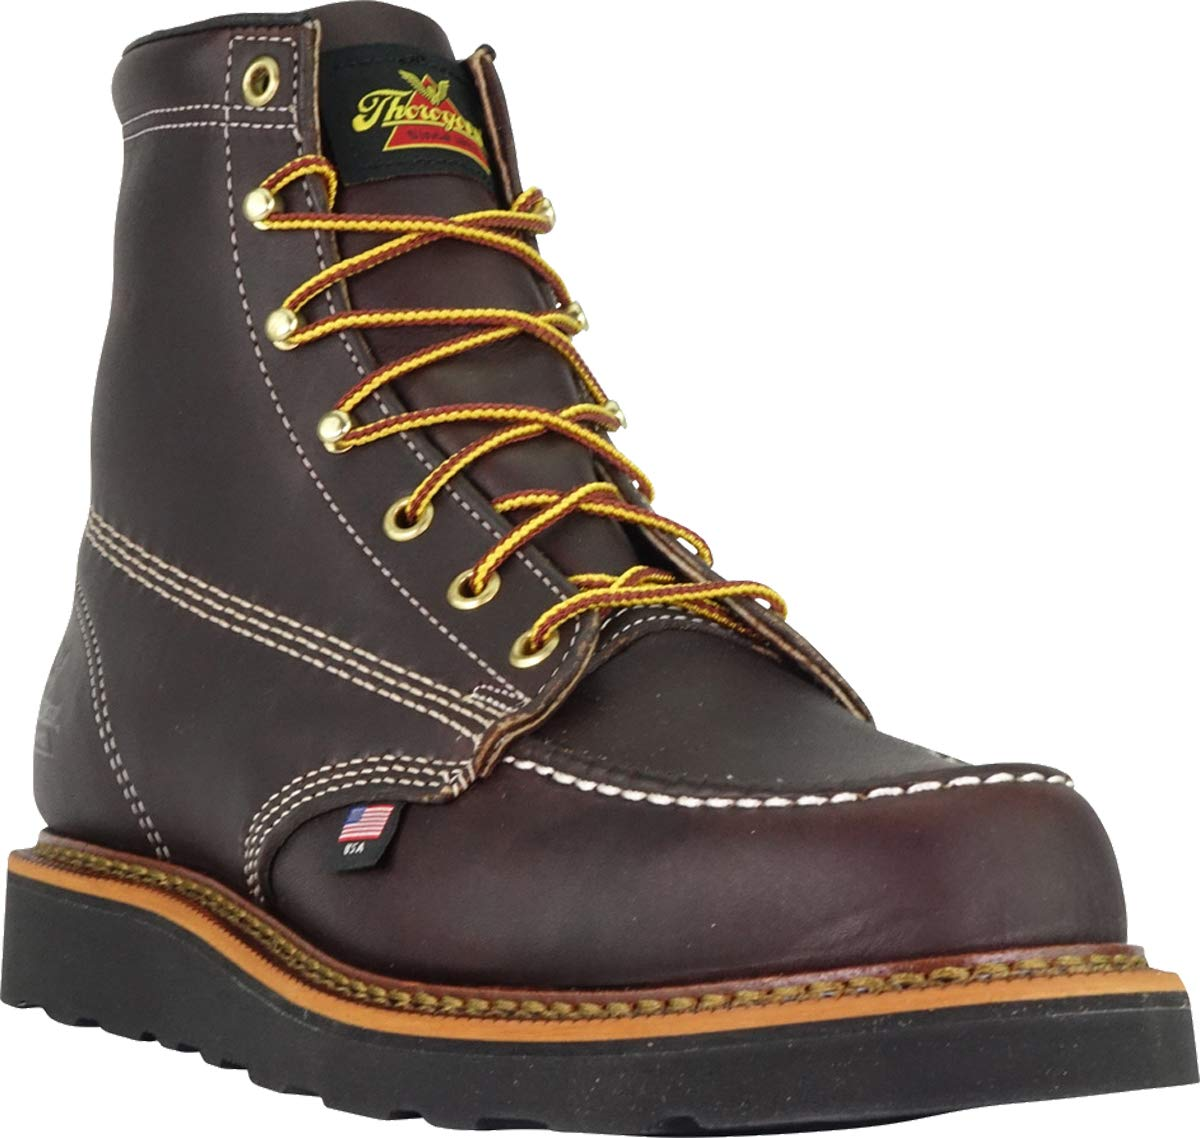 Thorogood-American-Heritage-Men-039-s-6-034-Moc-Toe-Max-Wedge-Non-Safety-Boots thumbnail 12